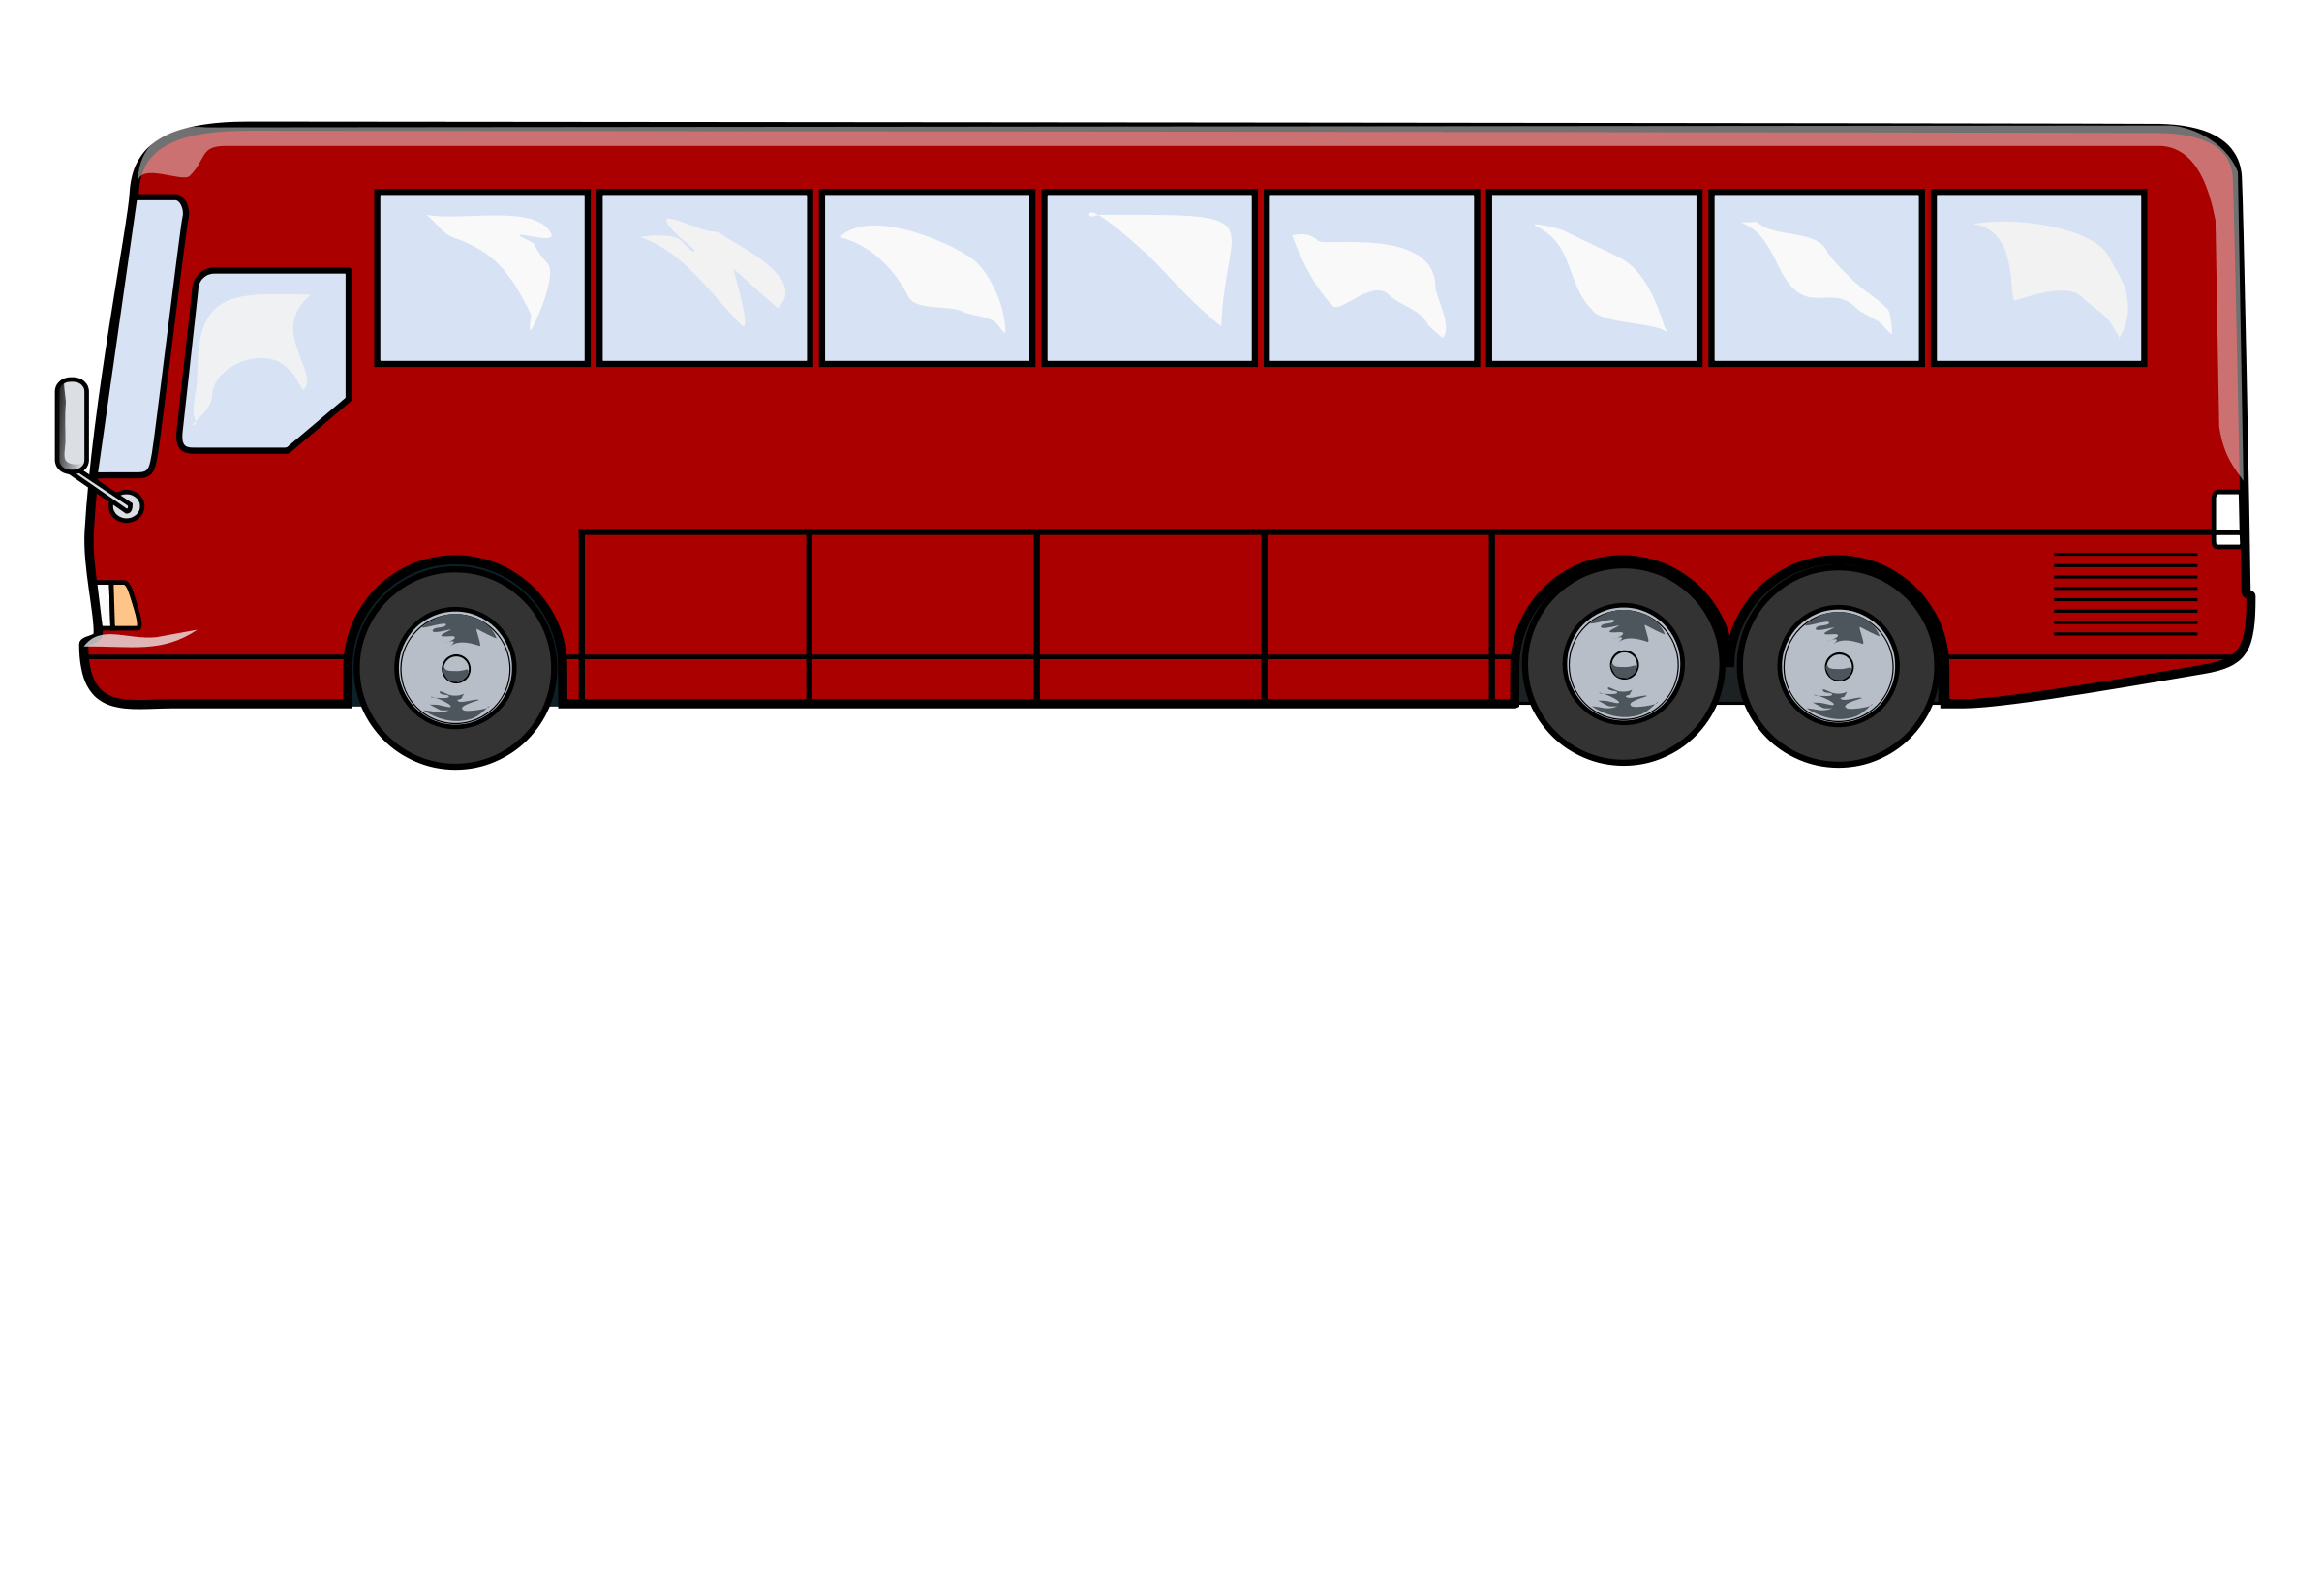 School bus side view clipart clip art transparent library City Bus Side View PNG Transparent City Bus Side View.PNG Images ... clip art transparent library